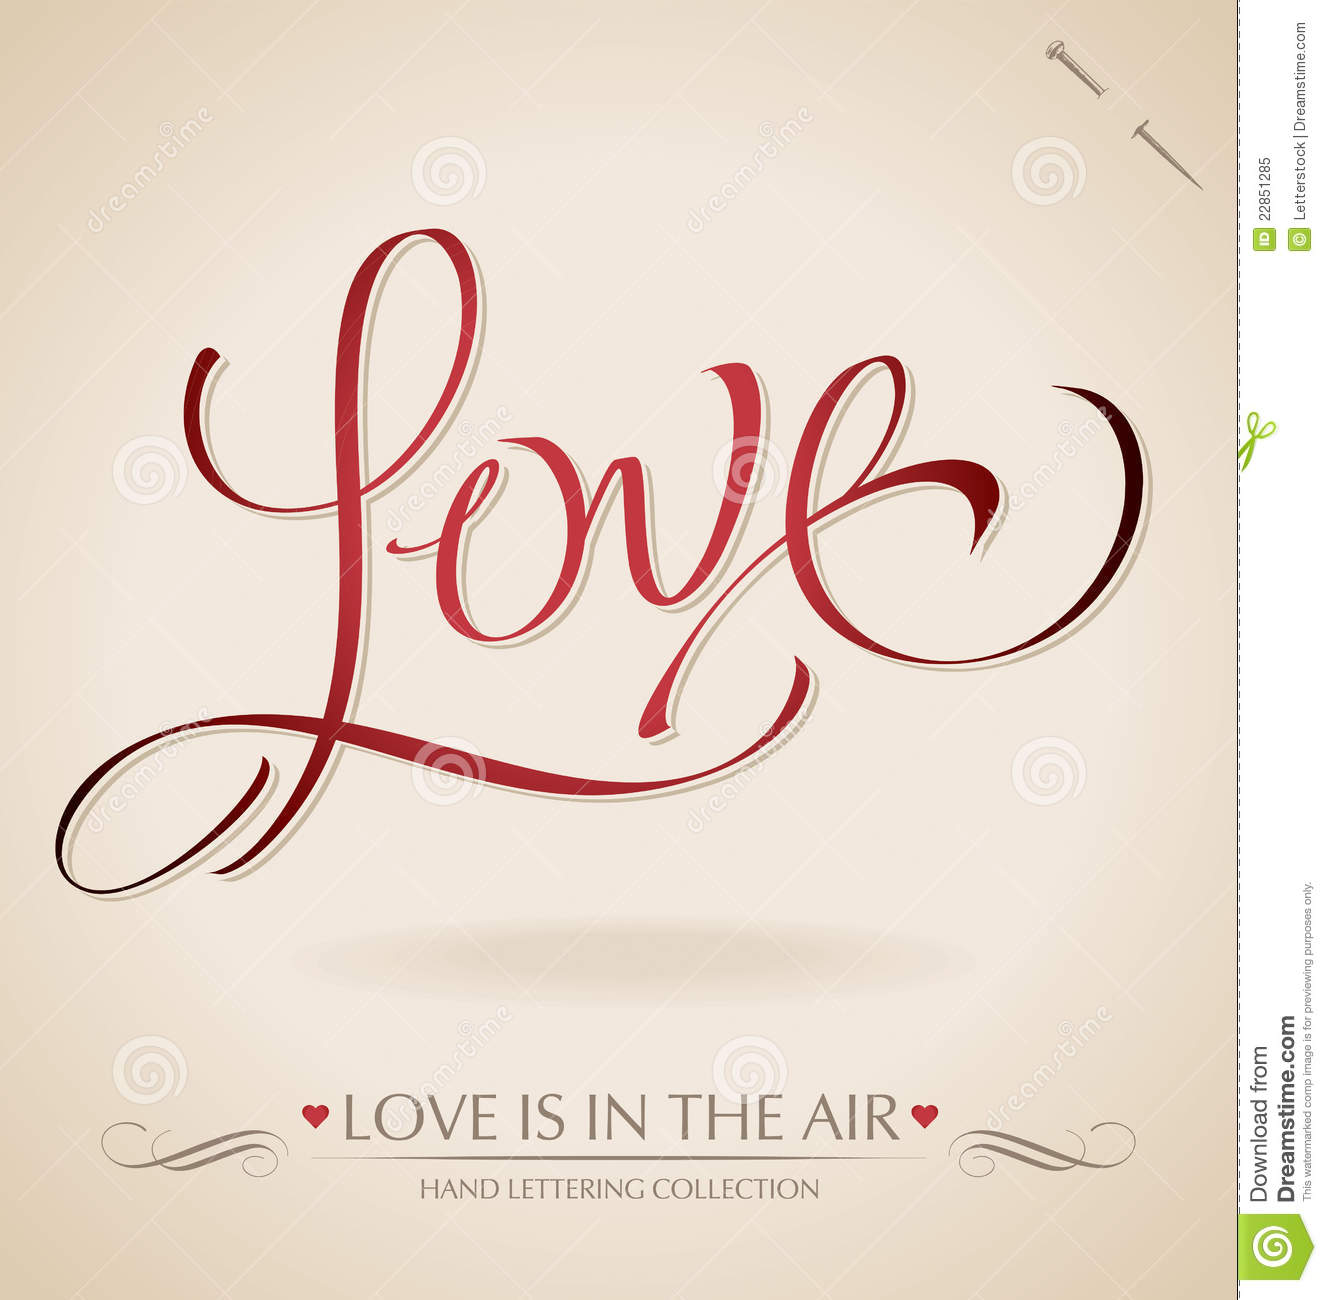 Love Hand Lettering Vector Royalty Free Stock Photo